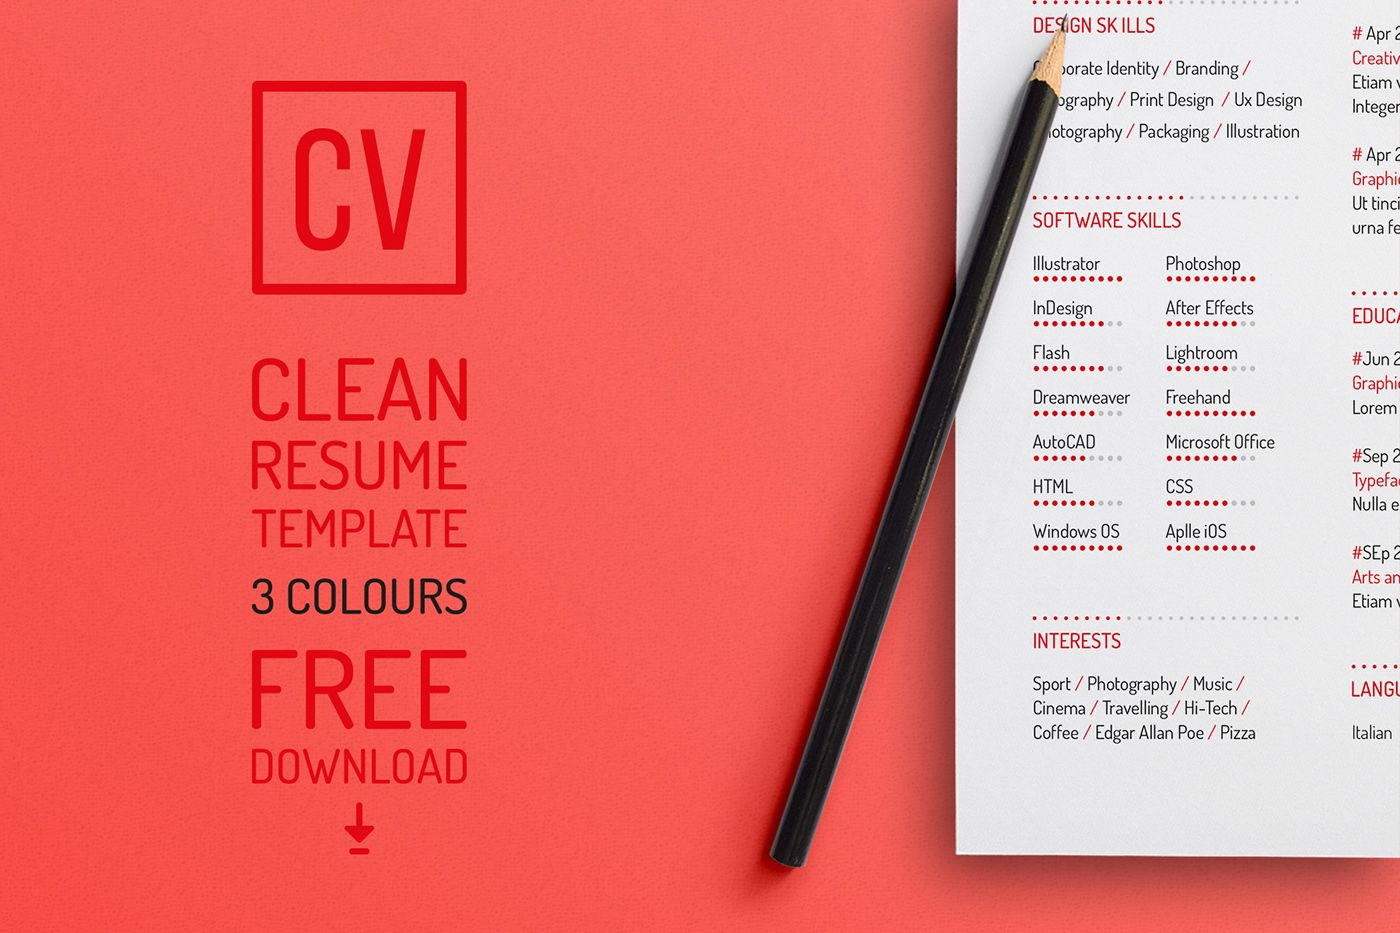 FREE Resume Template on Behance => More at designresources